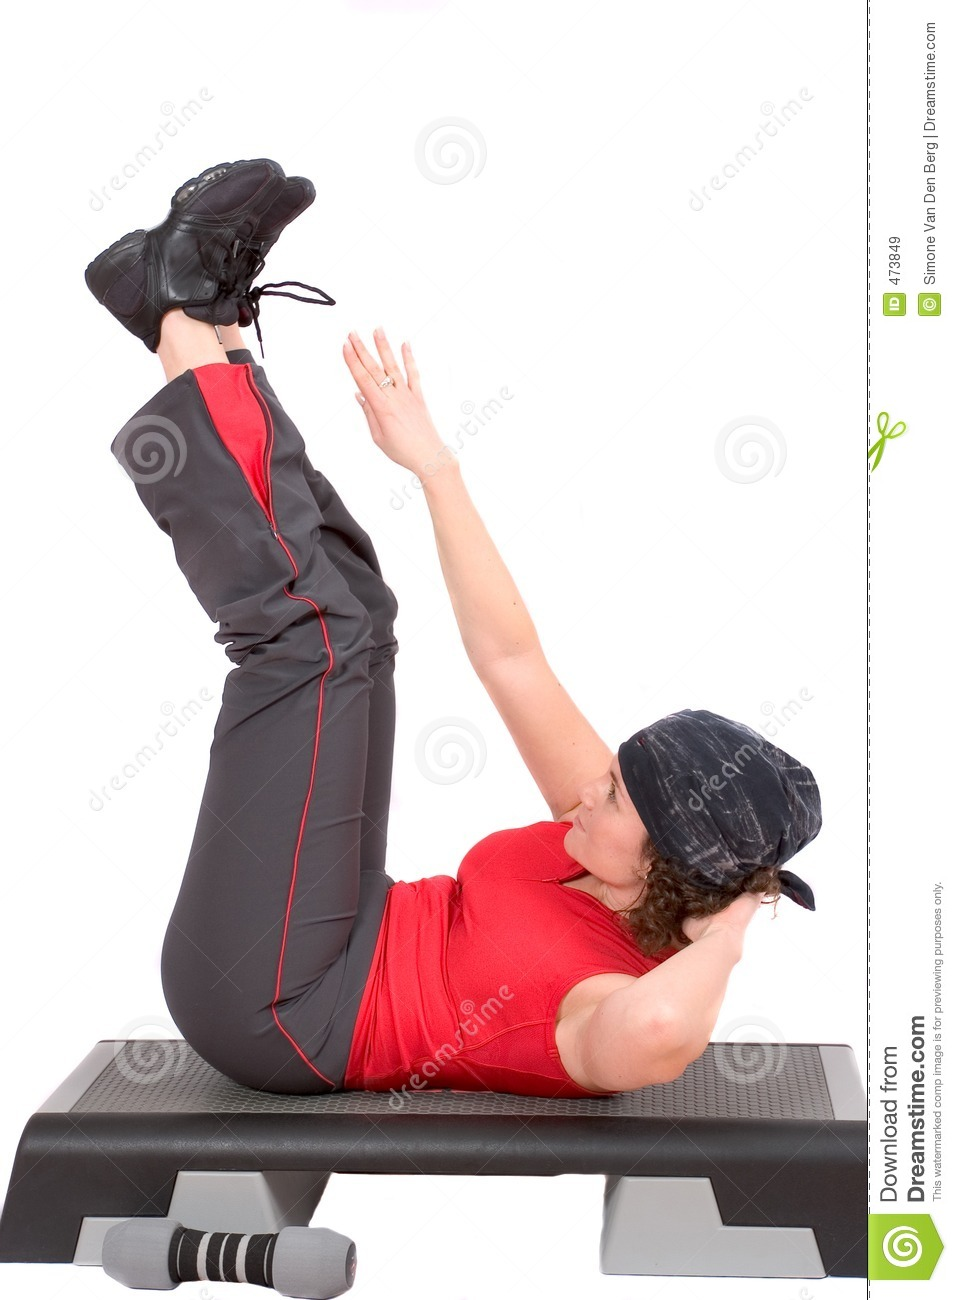 Download Abdominals stock image. Image of female, trainer, stretching - 473849